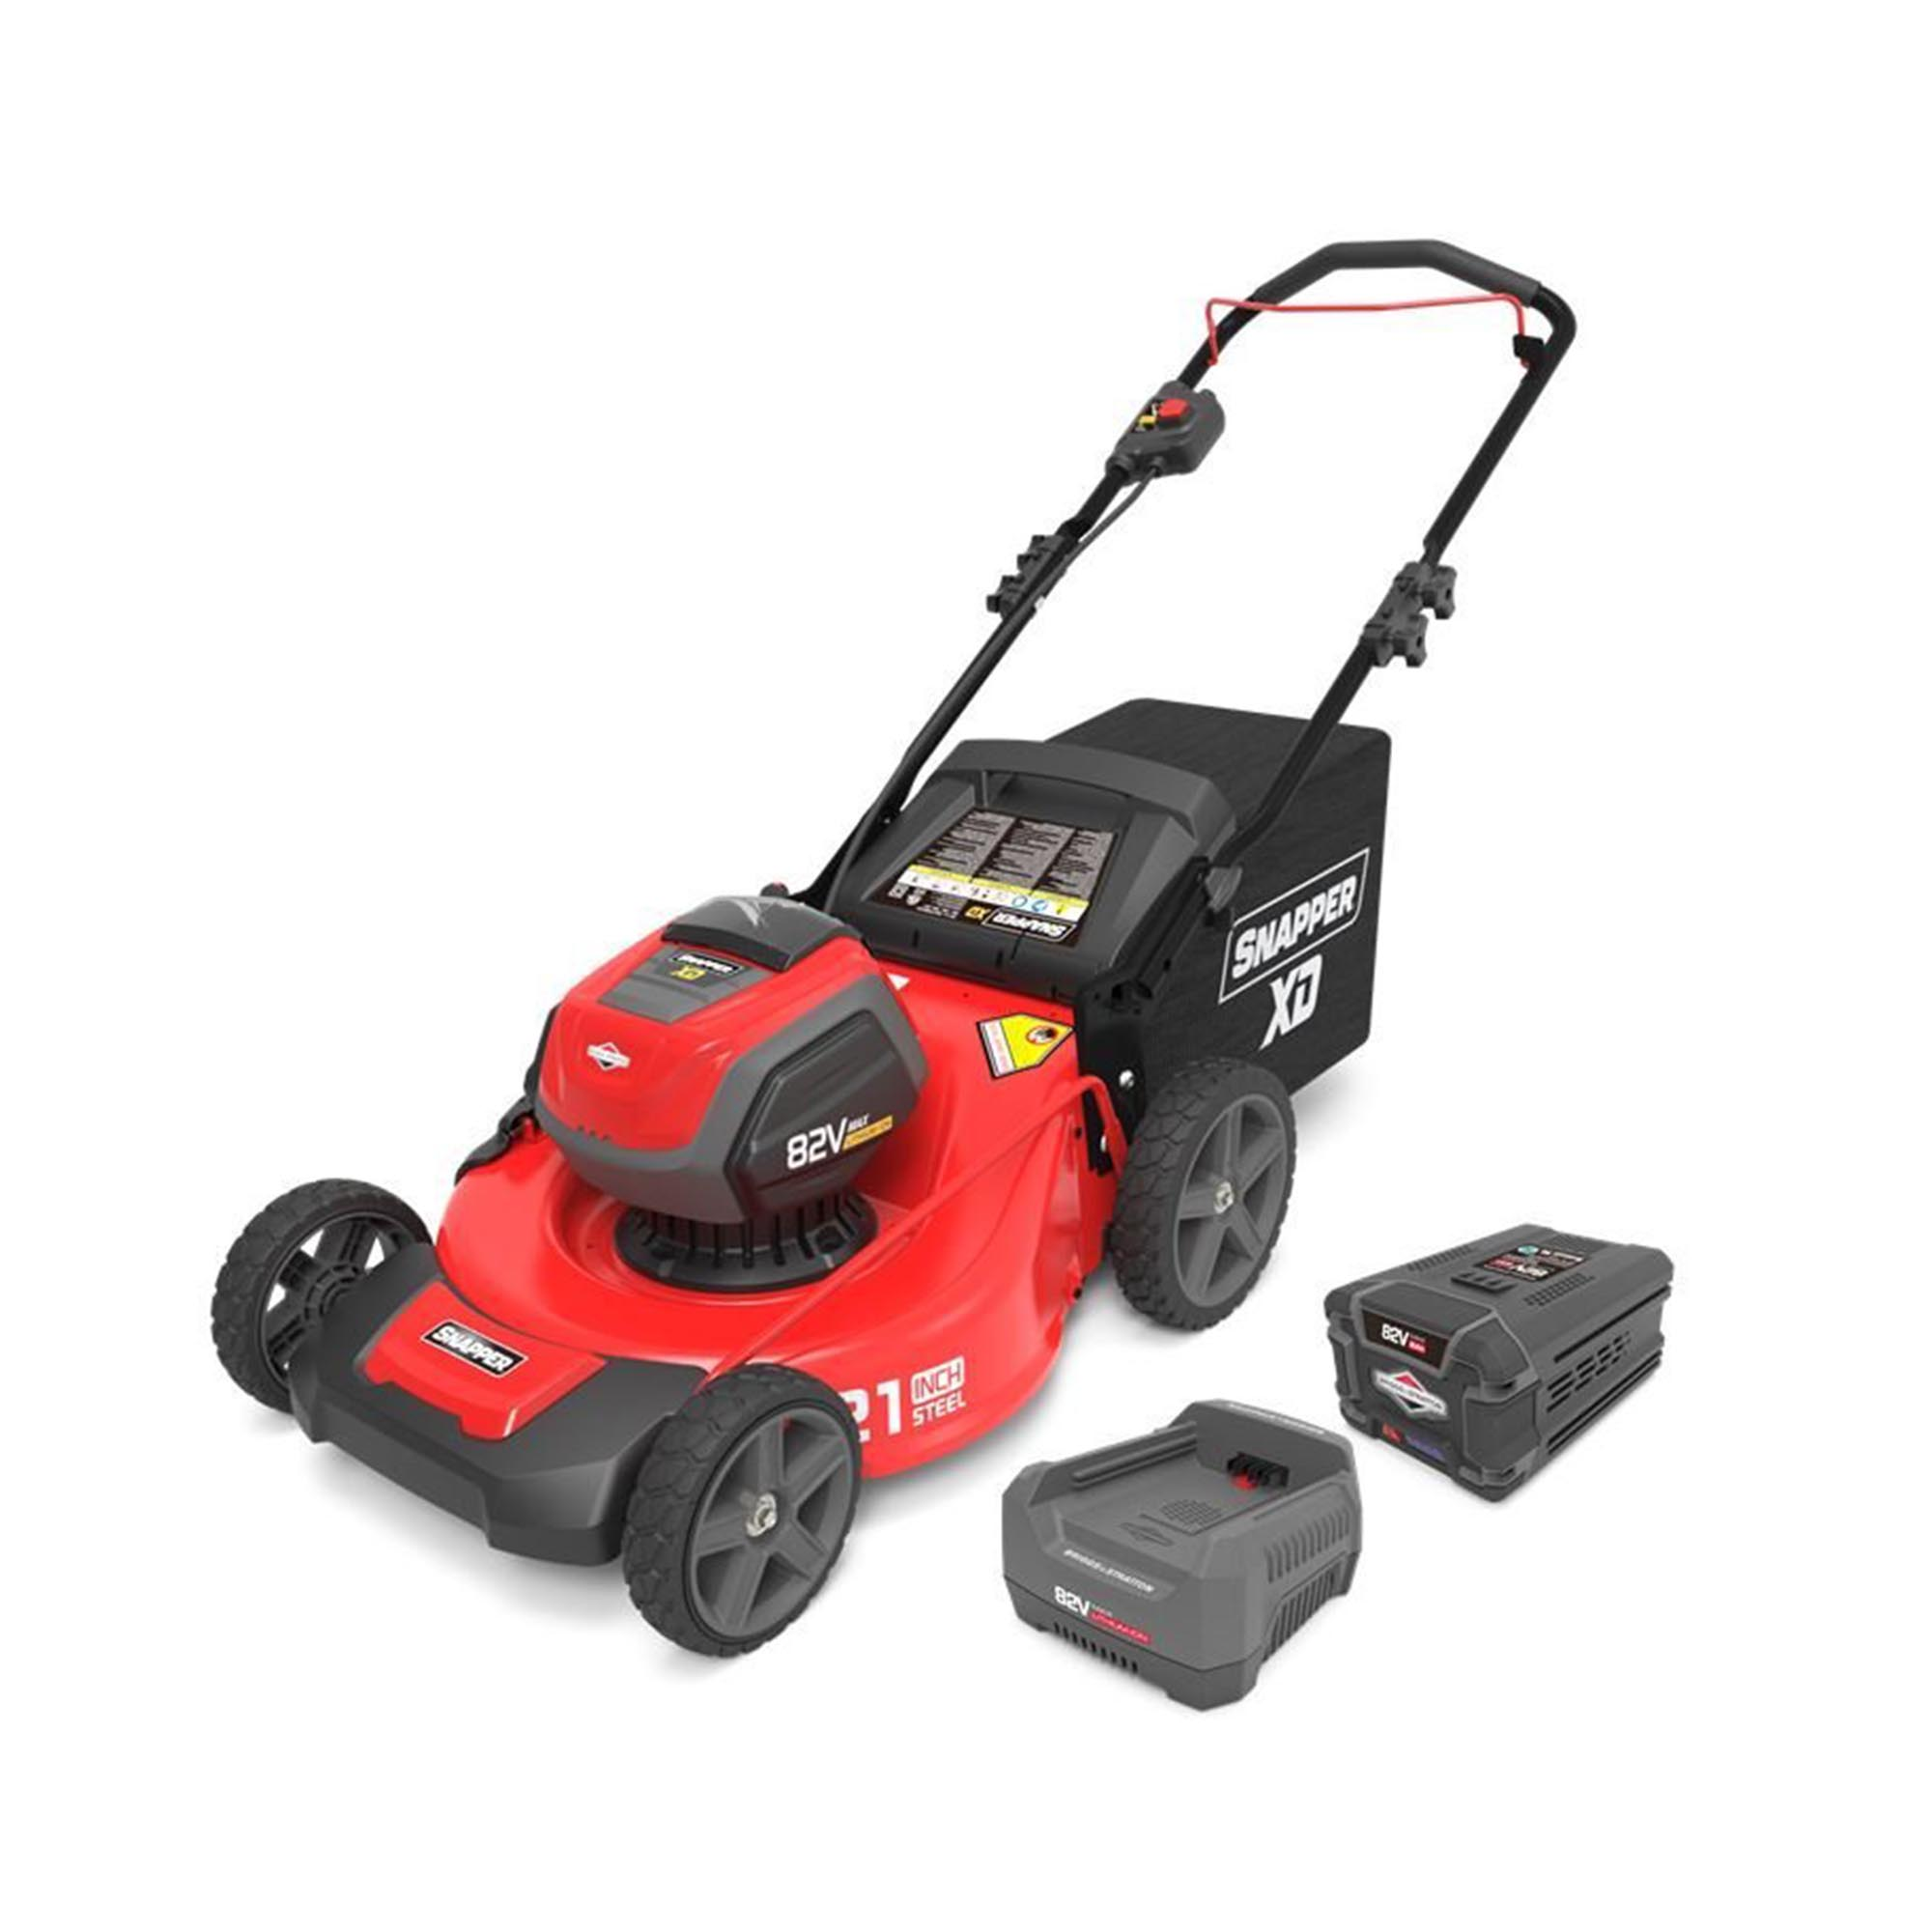 Snapper XD 82 Volt 21 Inch Cordless Lawn Mower w/ Battery & Charger   1687884